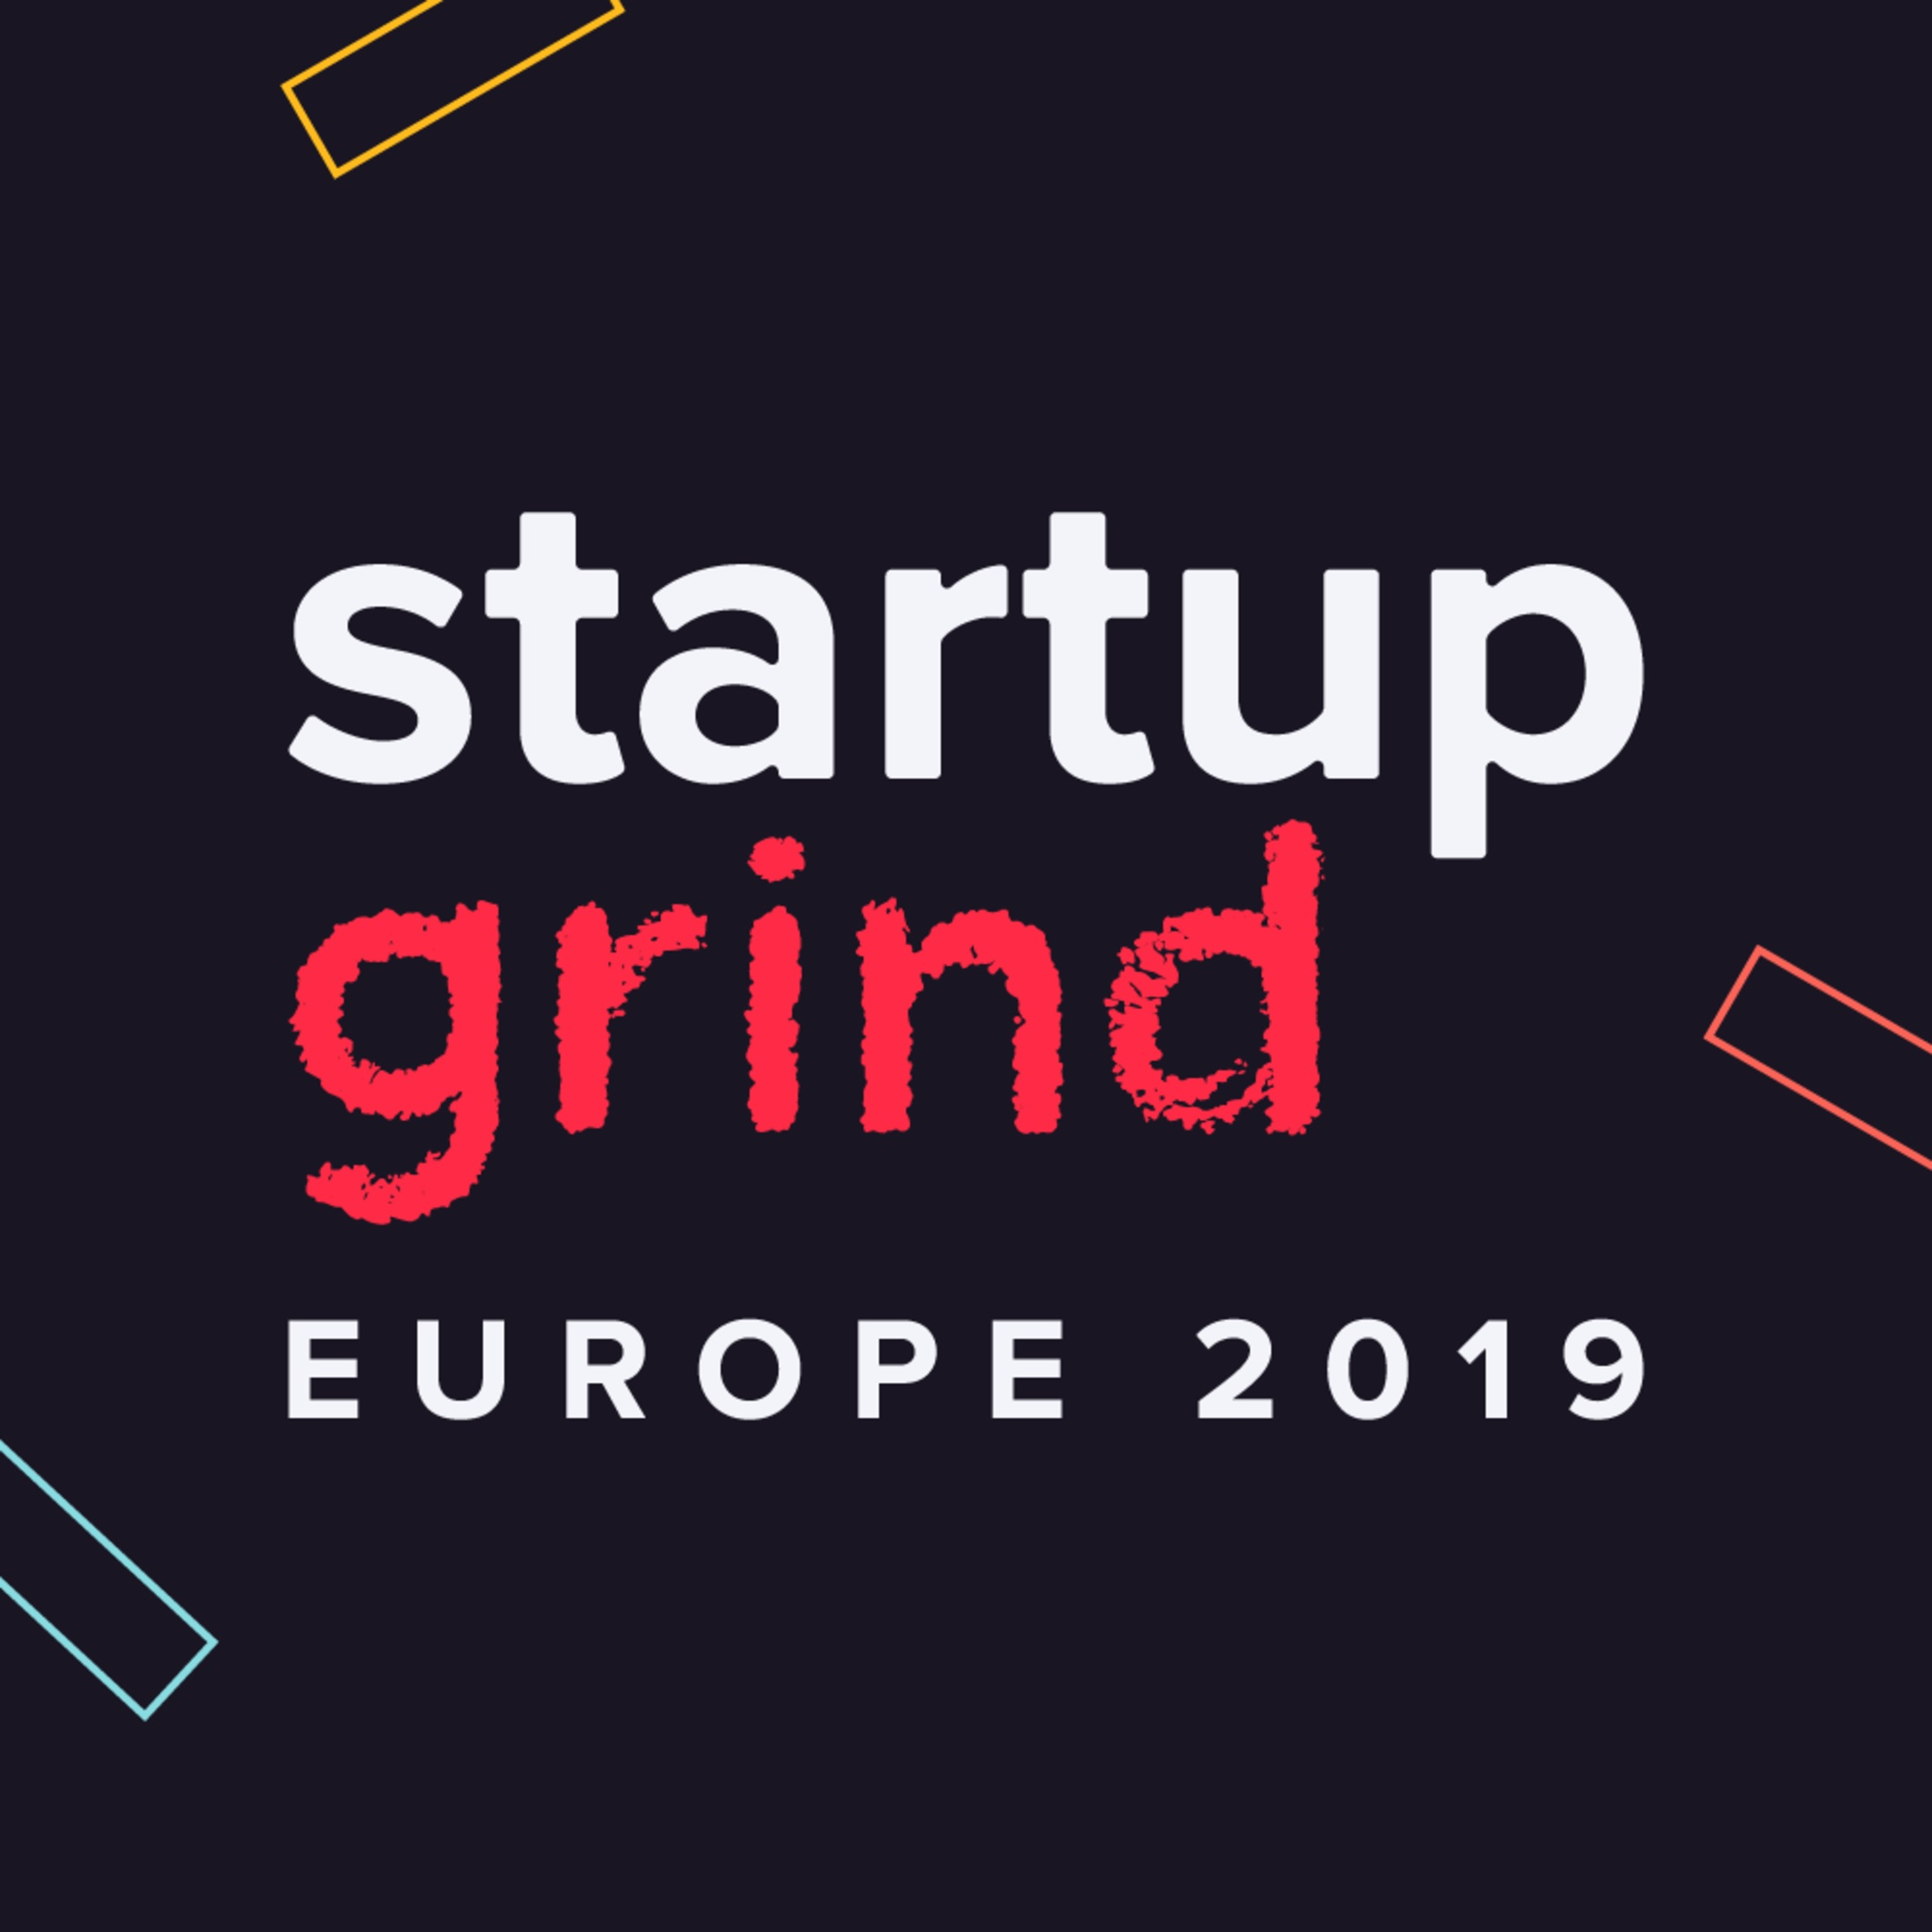 Hookle Inc. Selected To Exhibit At 2019 Startup Grind Europe Conference